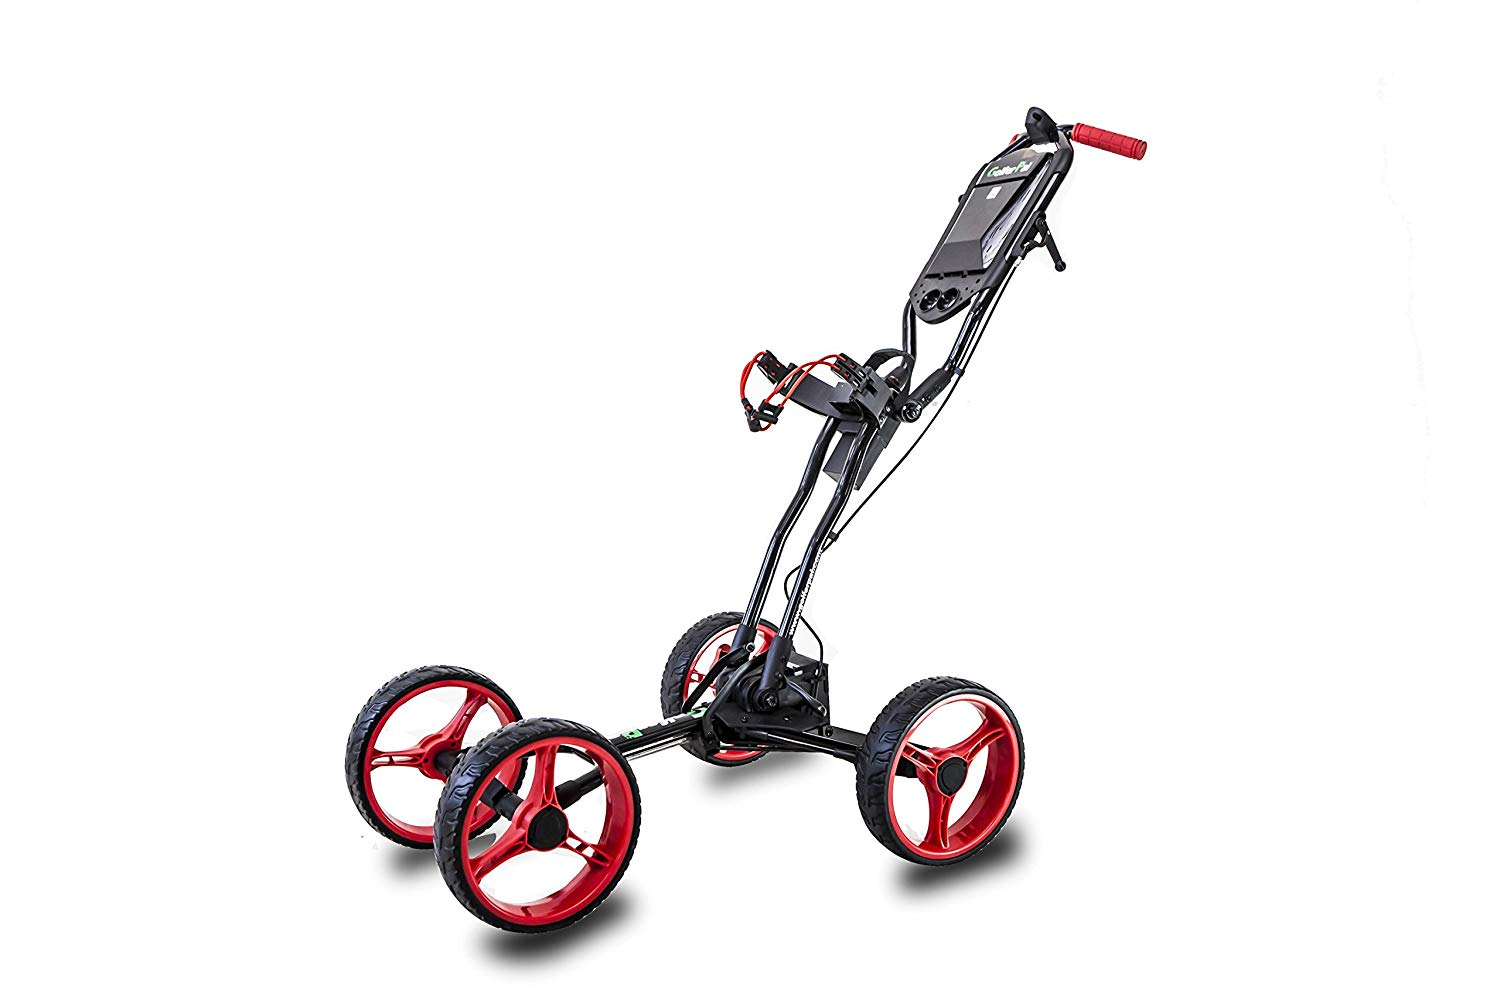 Top 10 Best Electric Golf Push Carts In 2021 Reviews 10